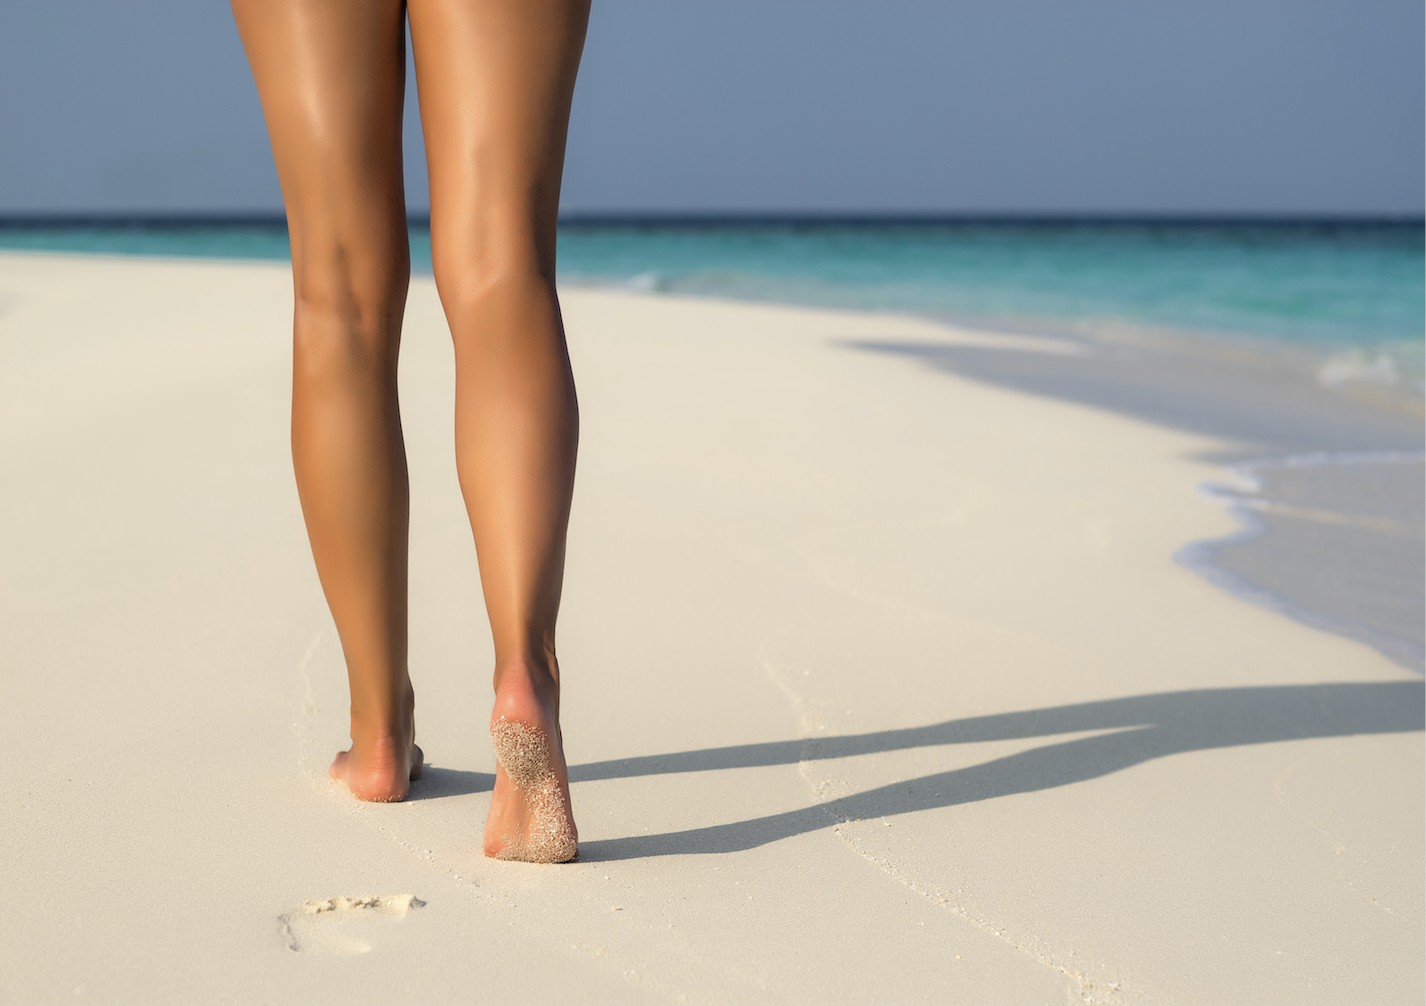 The Best Treatment For Cracked Heels And Dry Feet